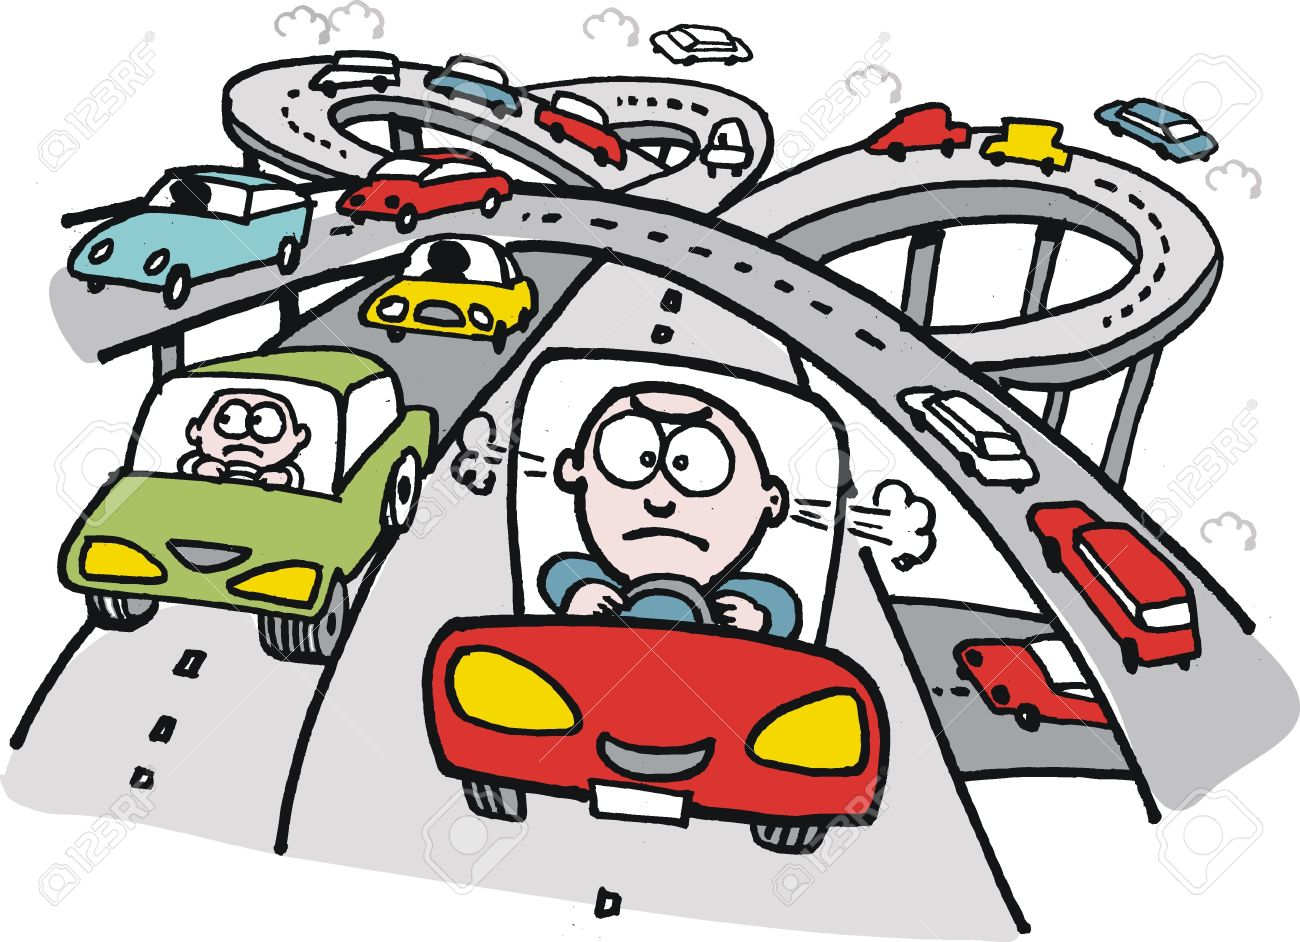 Cartoon Of Frustrated Motorist On Freeway Royalty Free Cliparts.